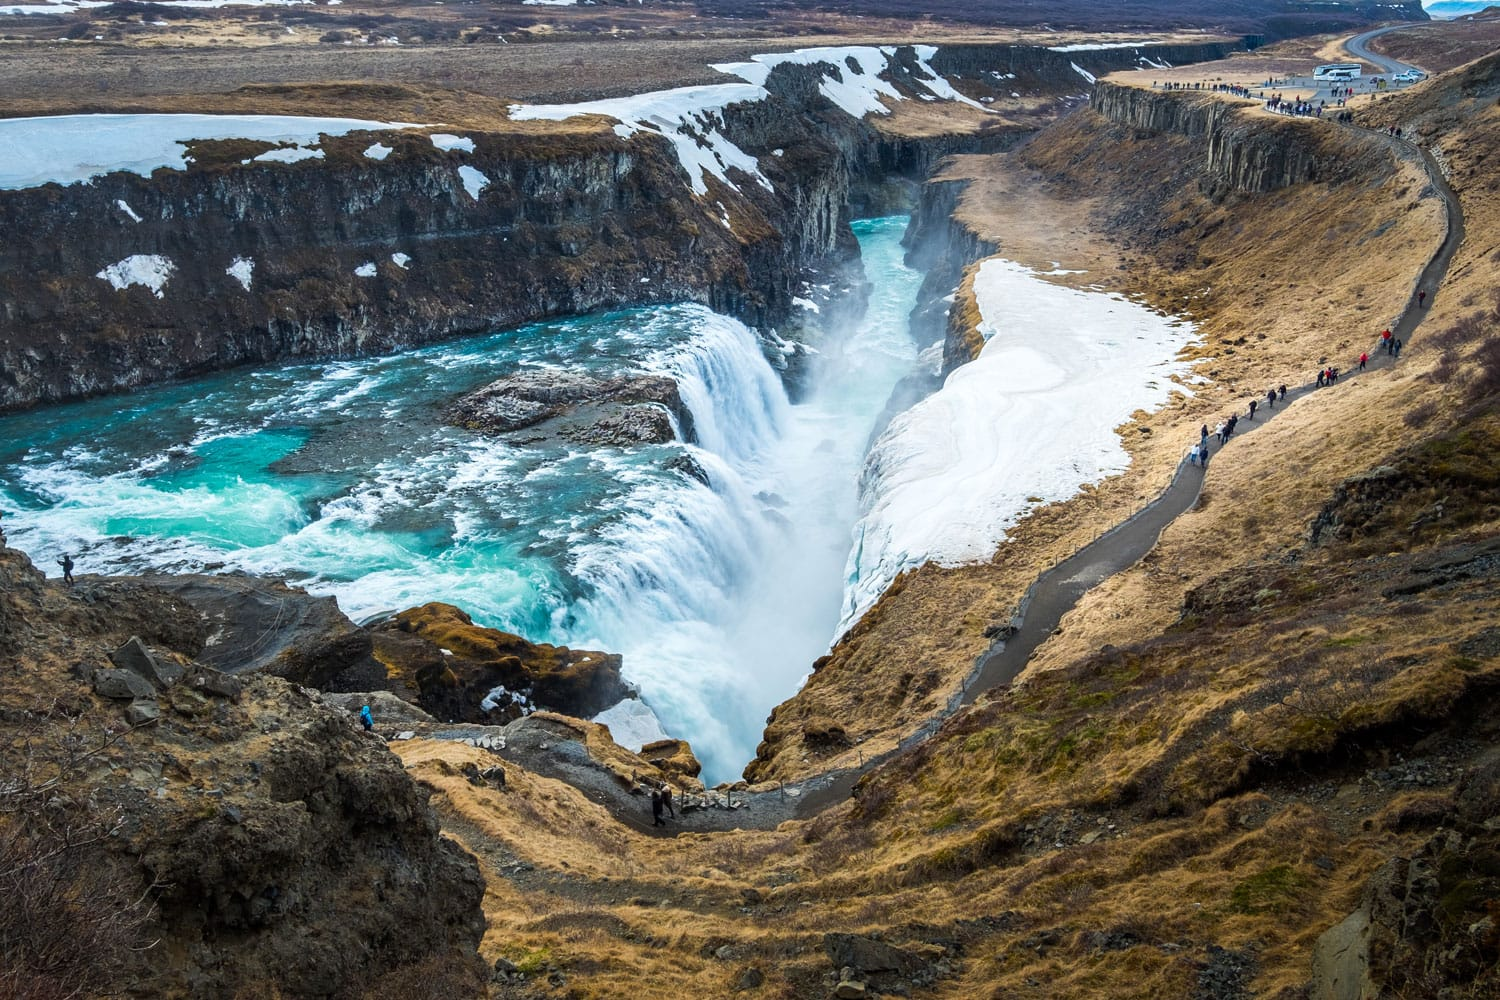 Gullfoss is a waterfall located in southwest Iceland